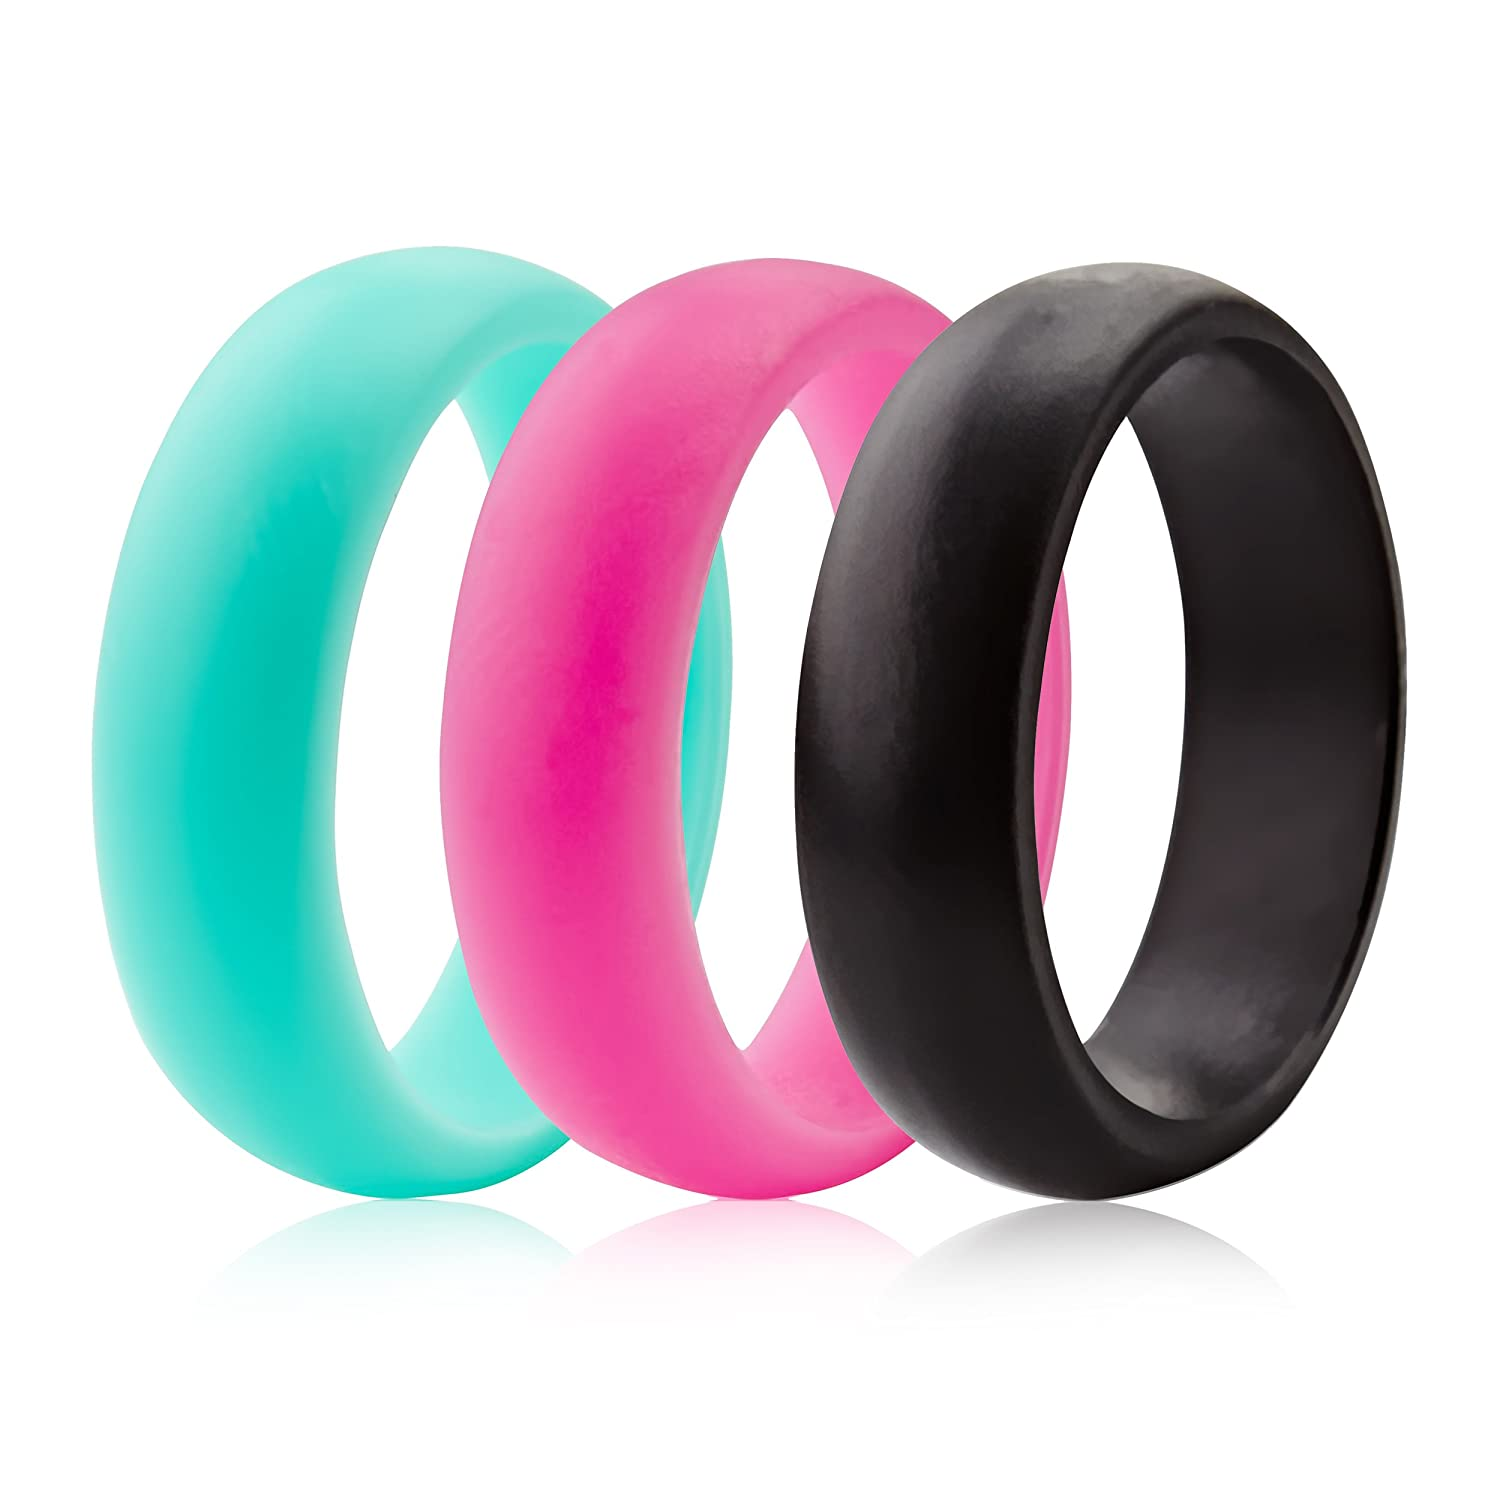 amazon silicone by mm wedding designed gift women for dp rubber rings thin grade medical ring with comes com rinfit width band pack a